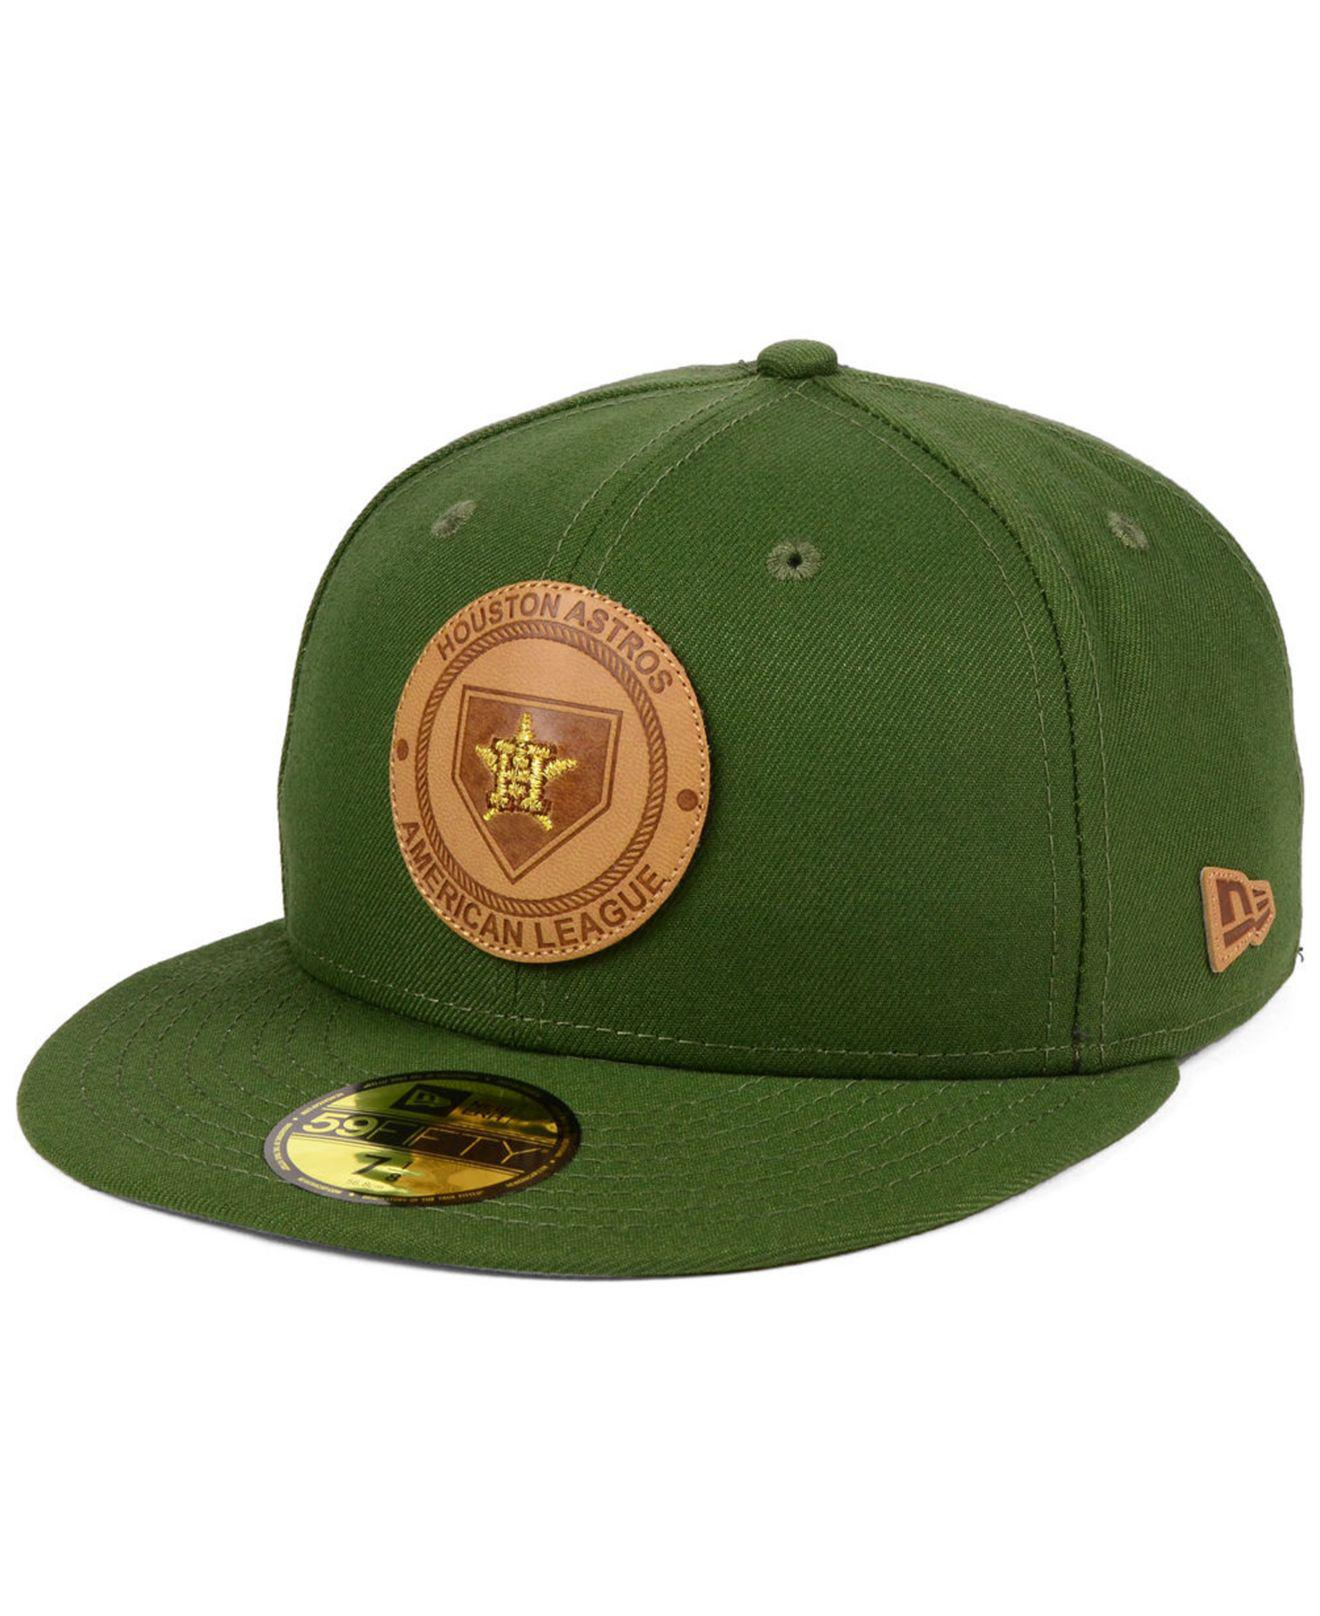 Lyst - KTZ Houston Astros Vintage Olive 59fifty Fitted Cap in Green ... ccfc06c6eca5